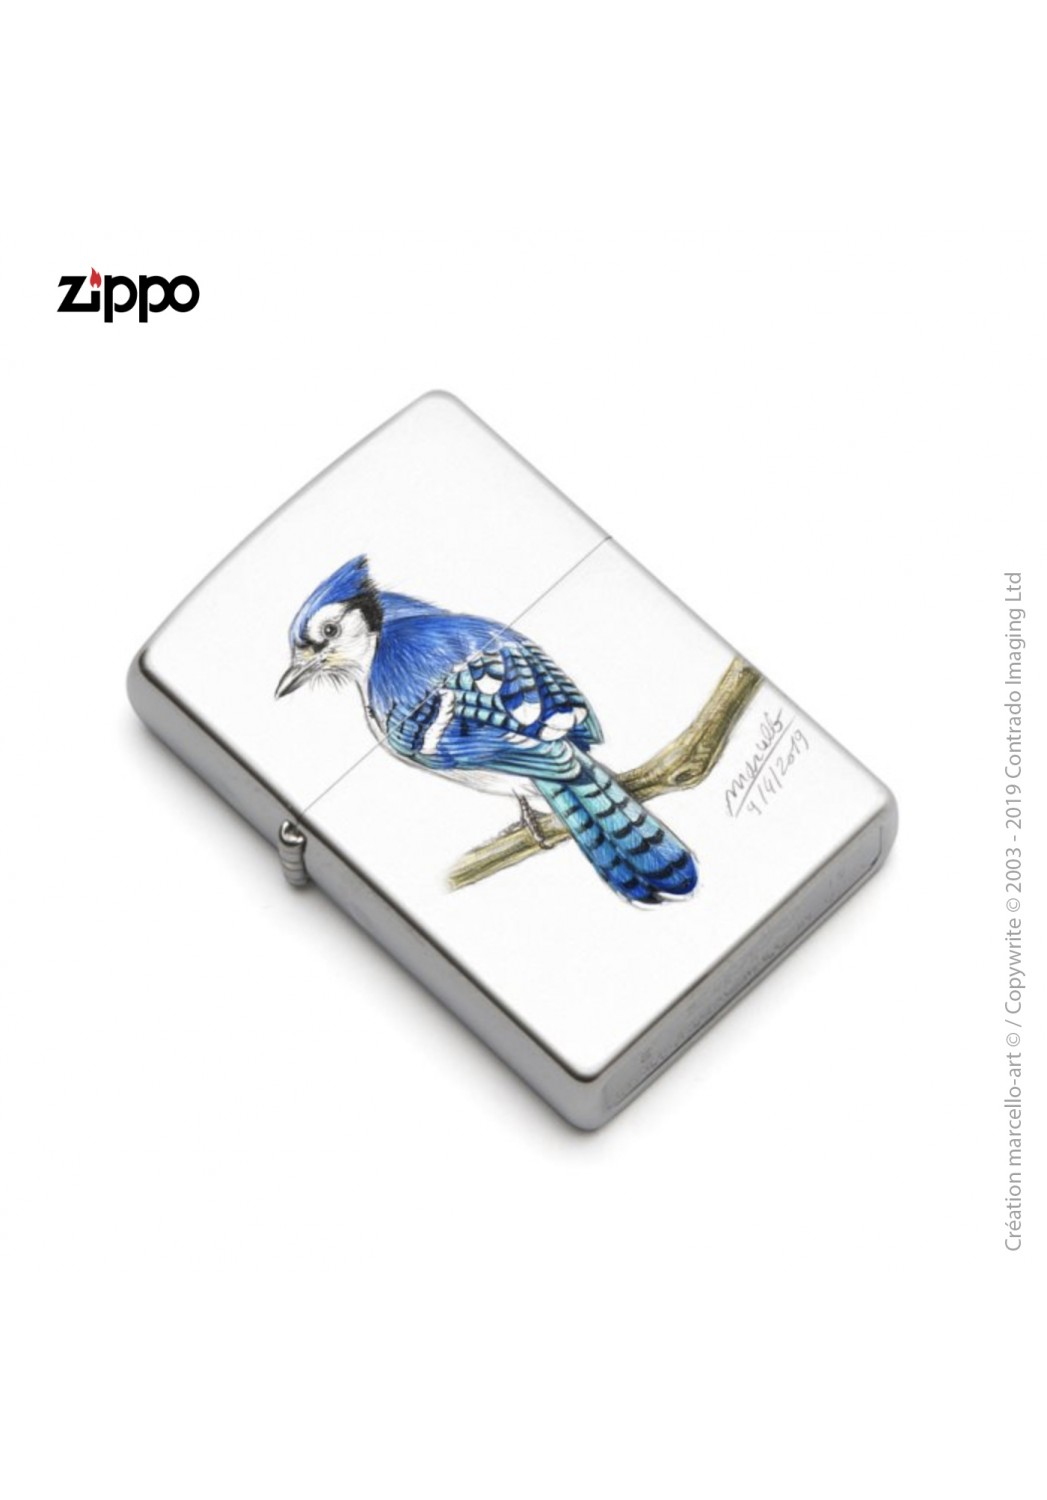 Marcello-art: Decoration accessoiries Zippo 393 blue jay